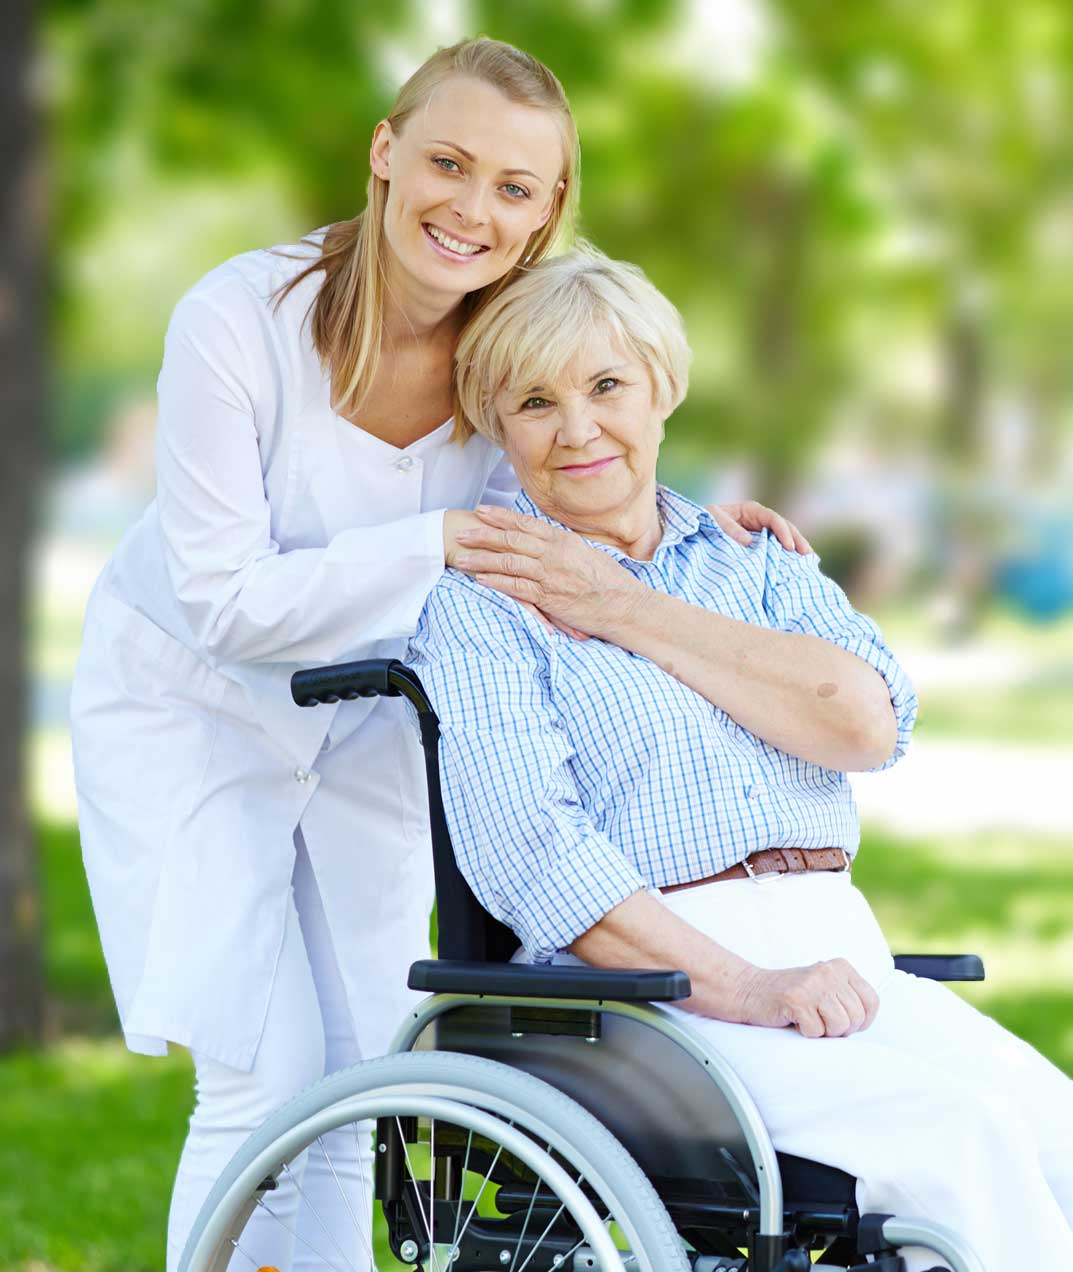 Elderly Health Care Services By Helping Hands For Seniors